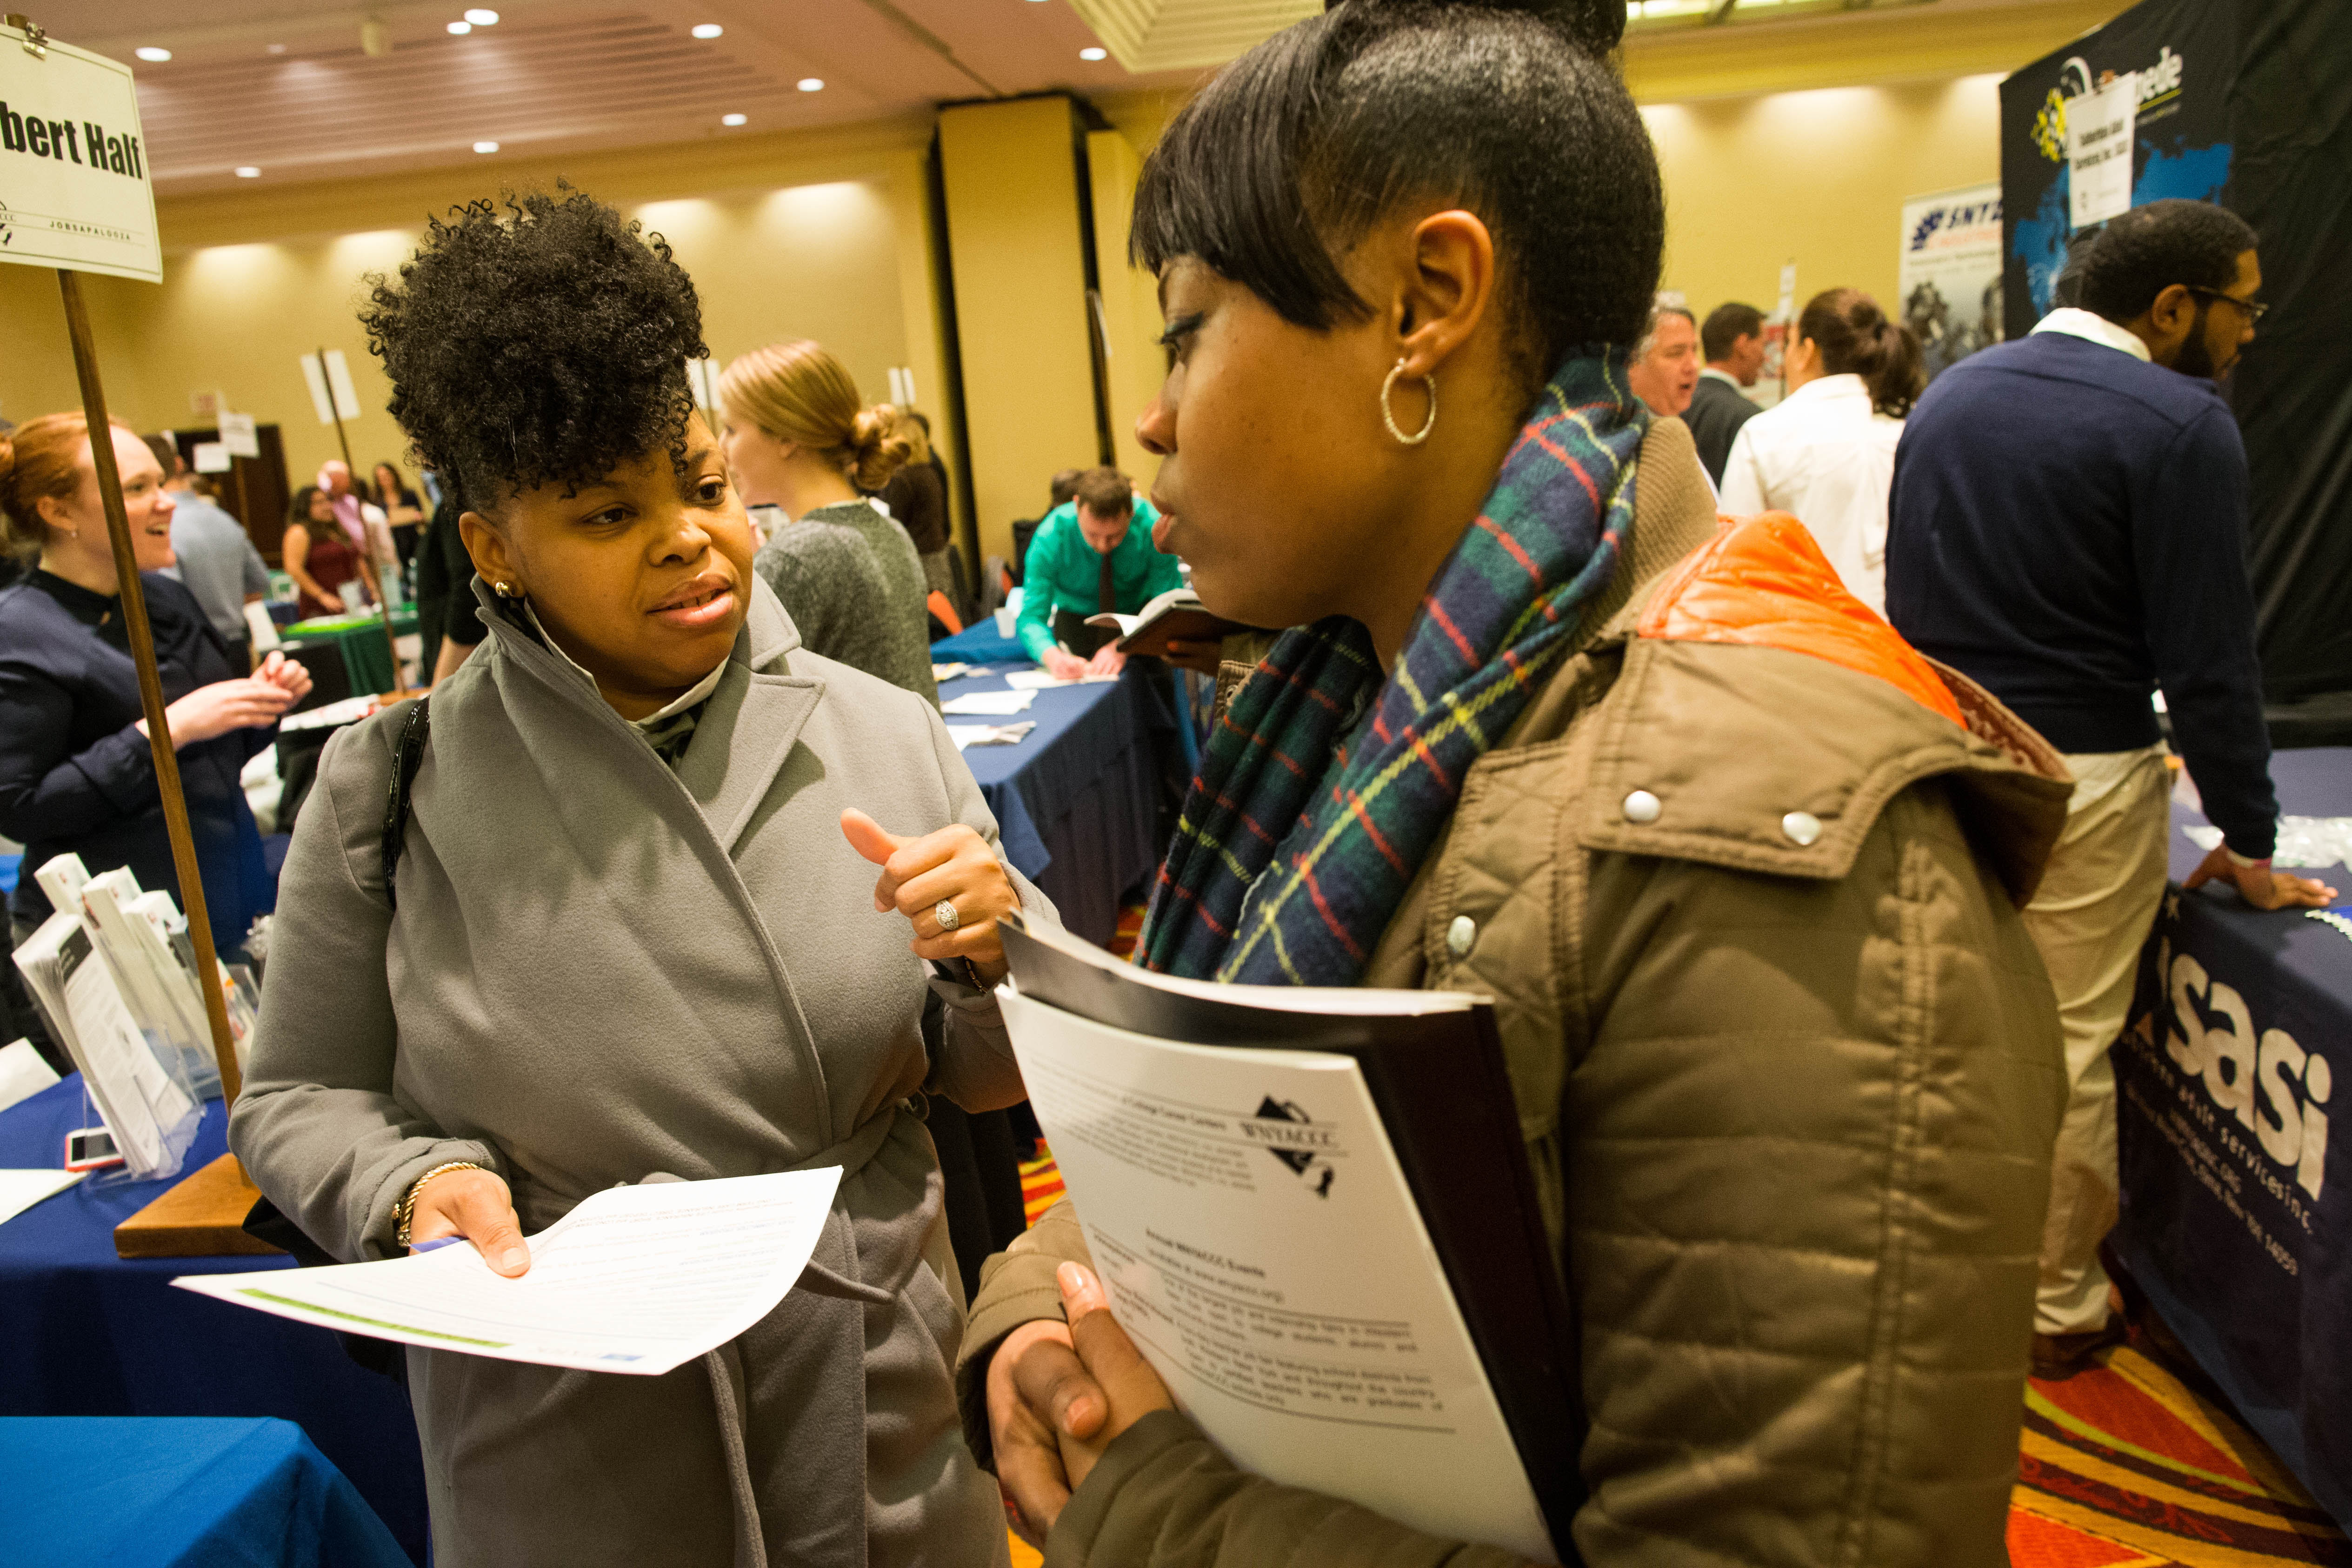 Job seekers Chelitta Spencer, left, and Darcel Blue chat during the Jobsapalooza career fair at the Buffalo Niagara Marriott in Amherst earlier this month.  (Derek Gee/Buffalo News)